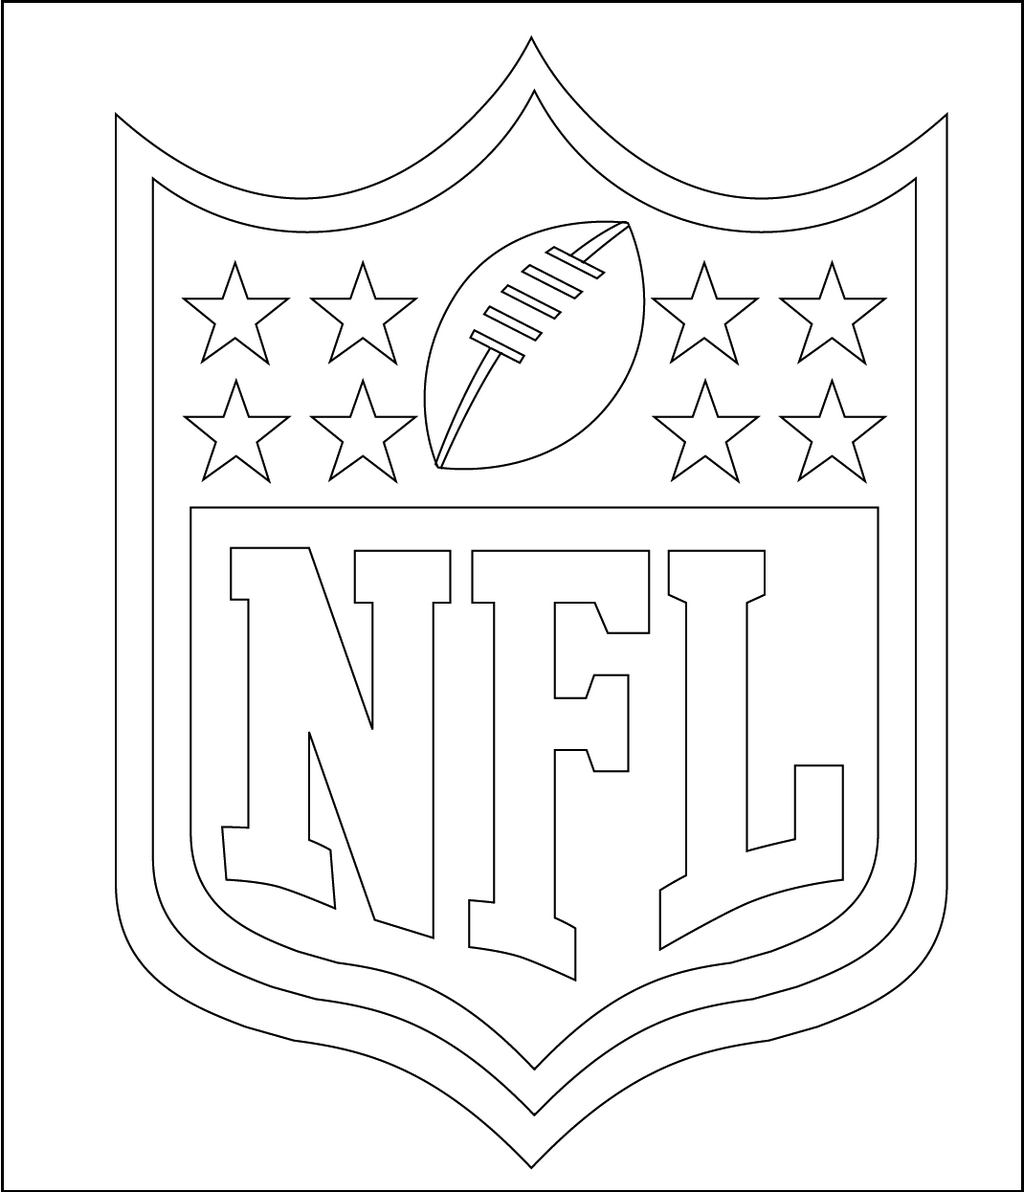 Fantastic Coloring Sheet For Kids Who Love Football This Sheet